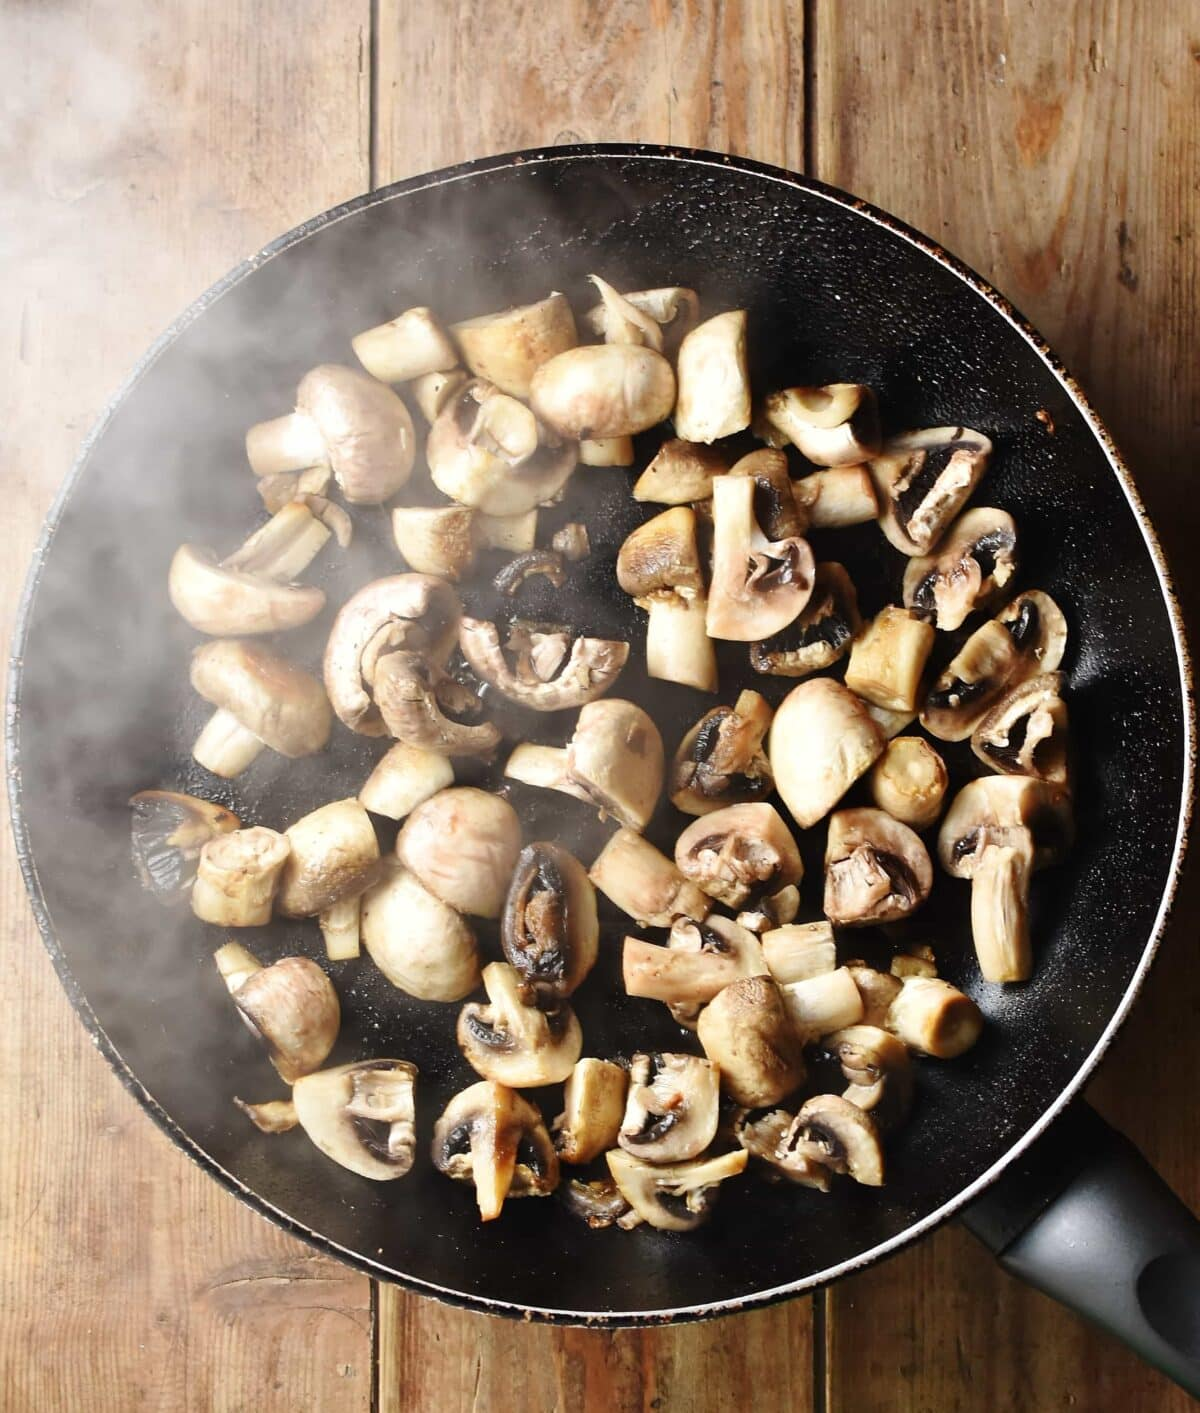 Chopped mushrooms in large pan with steam visible.